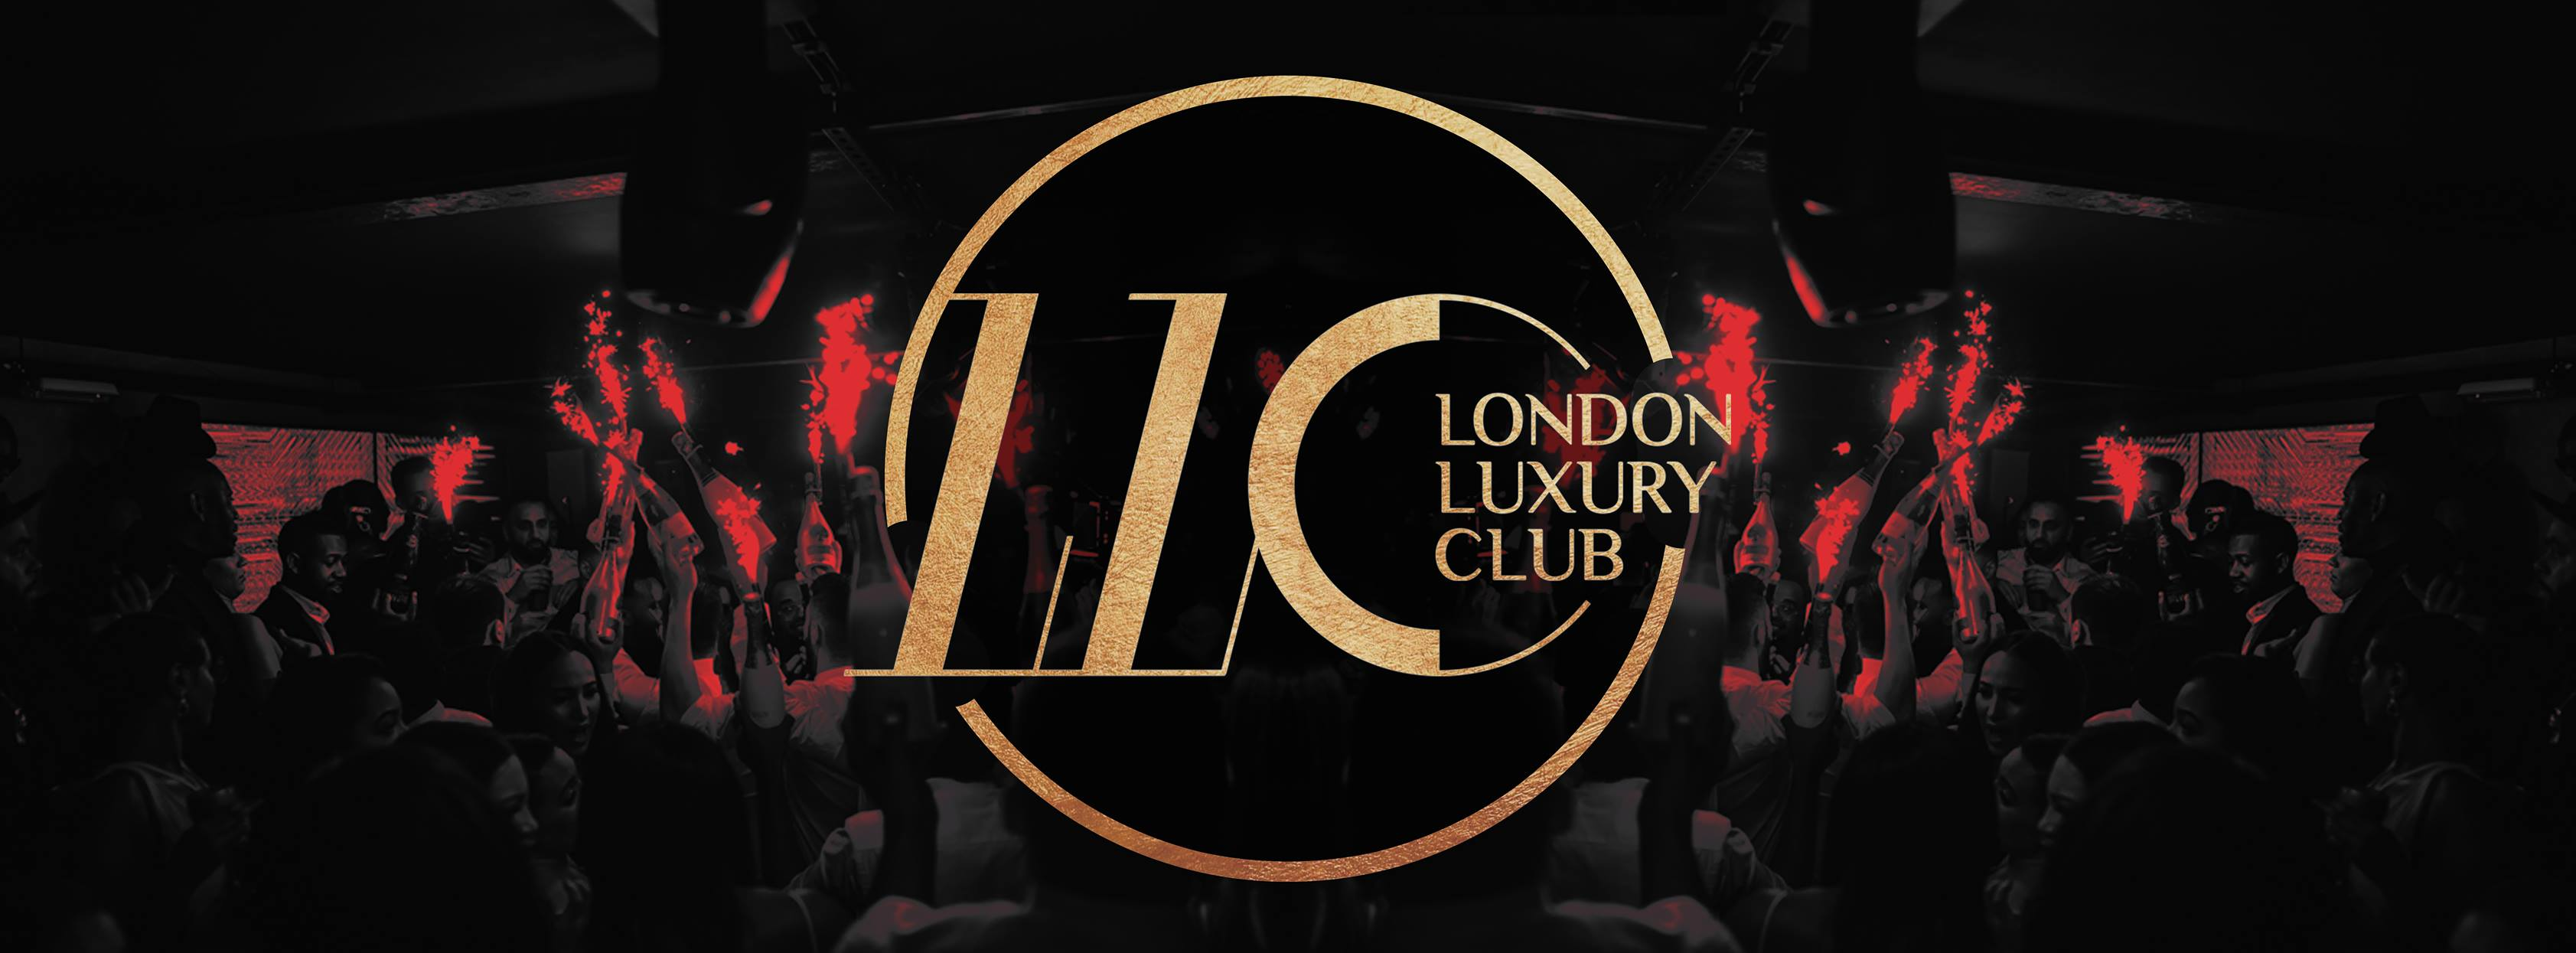 LLC London Luxury Club - LLC Guestlist Entry & LLC Tables